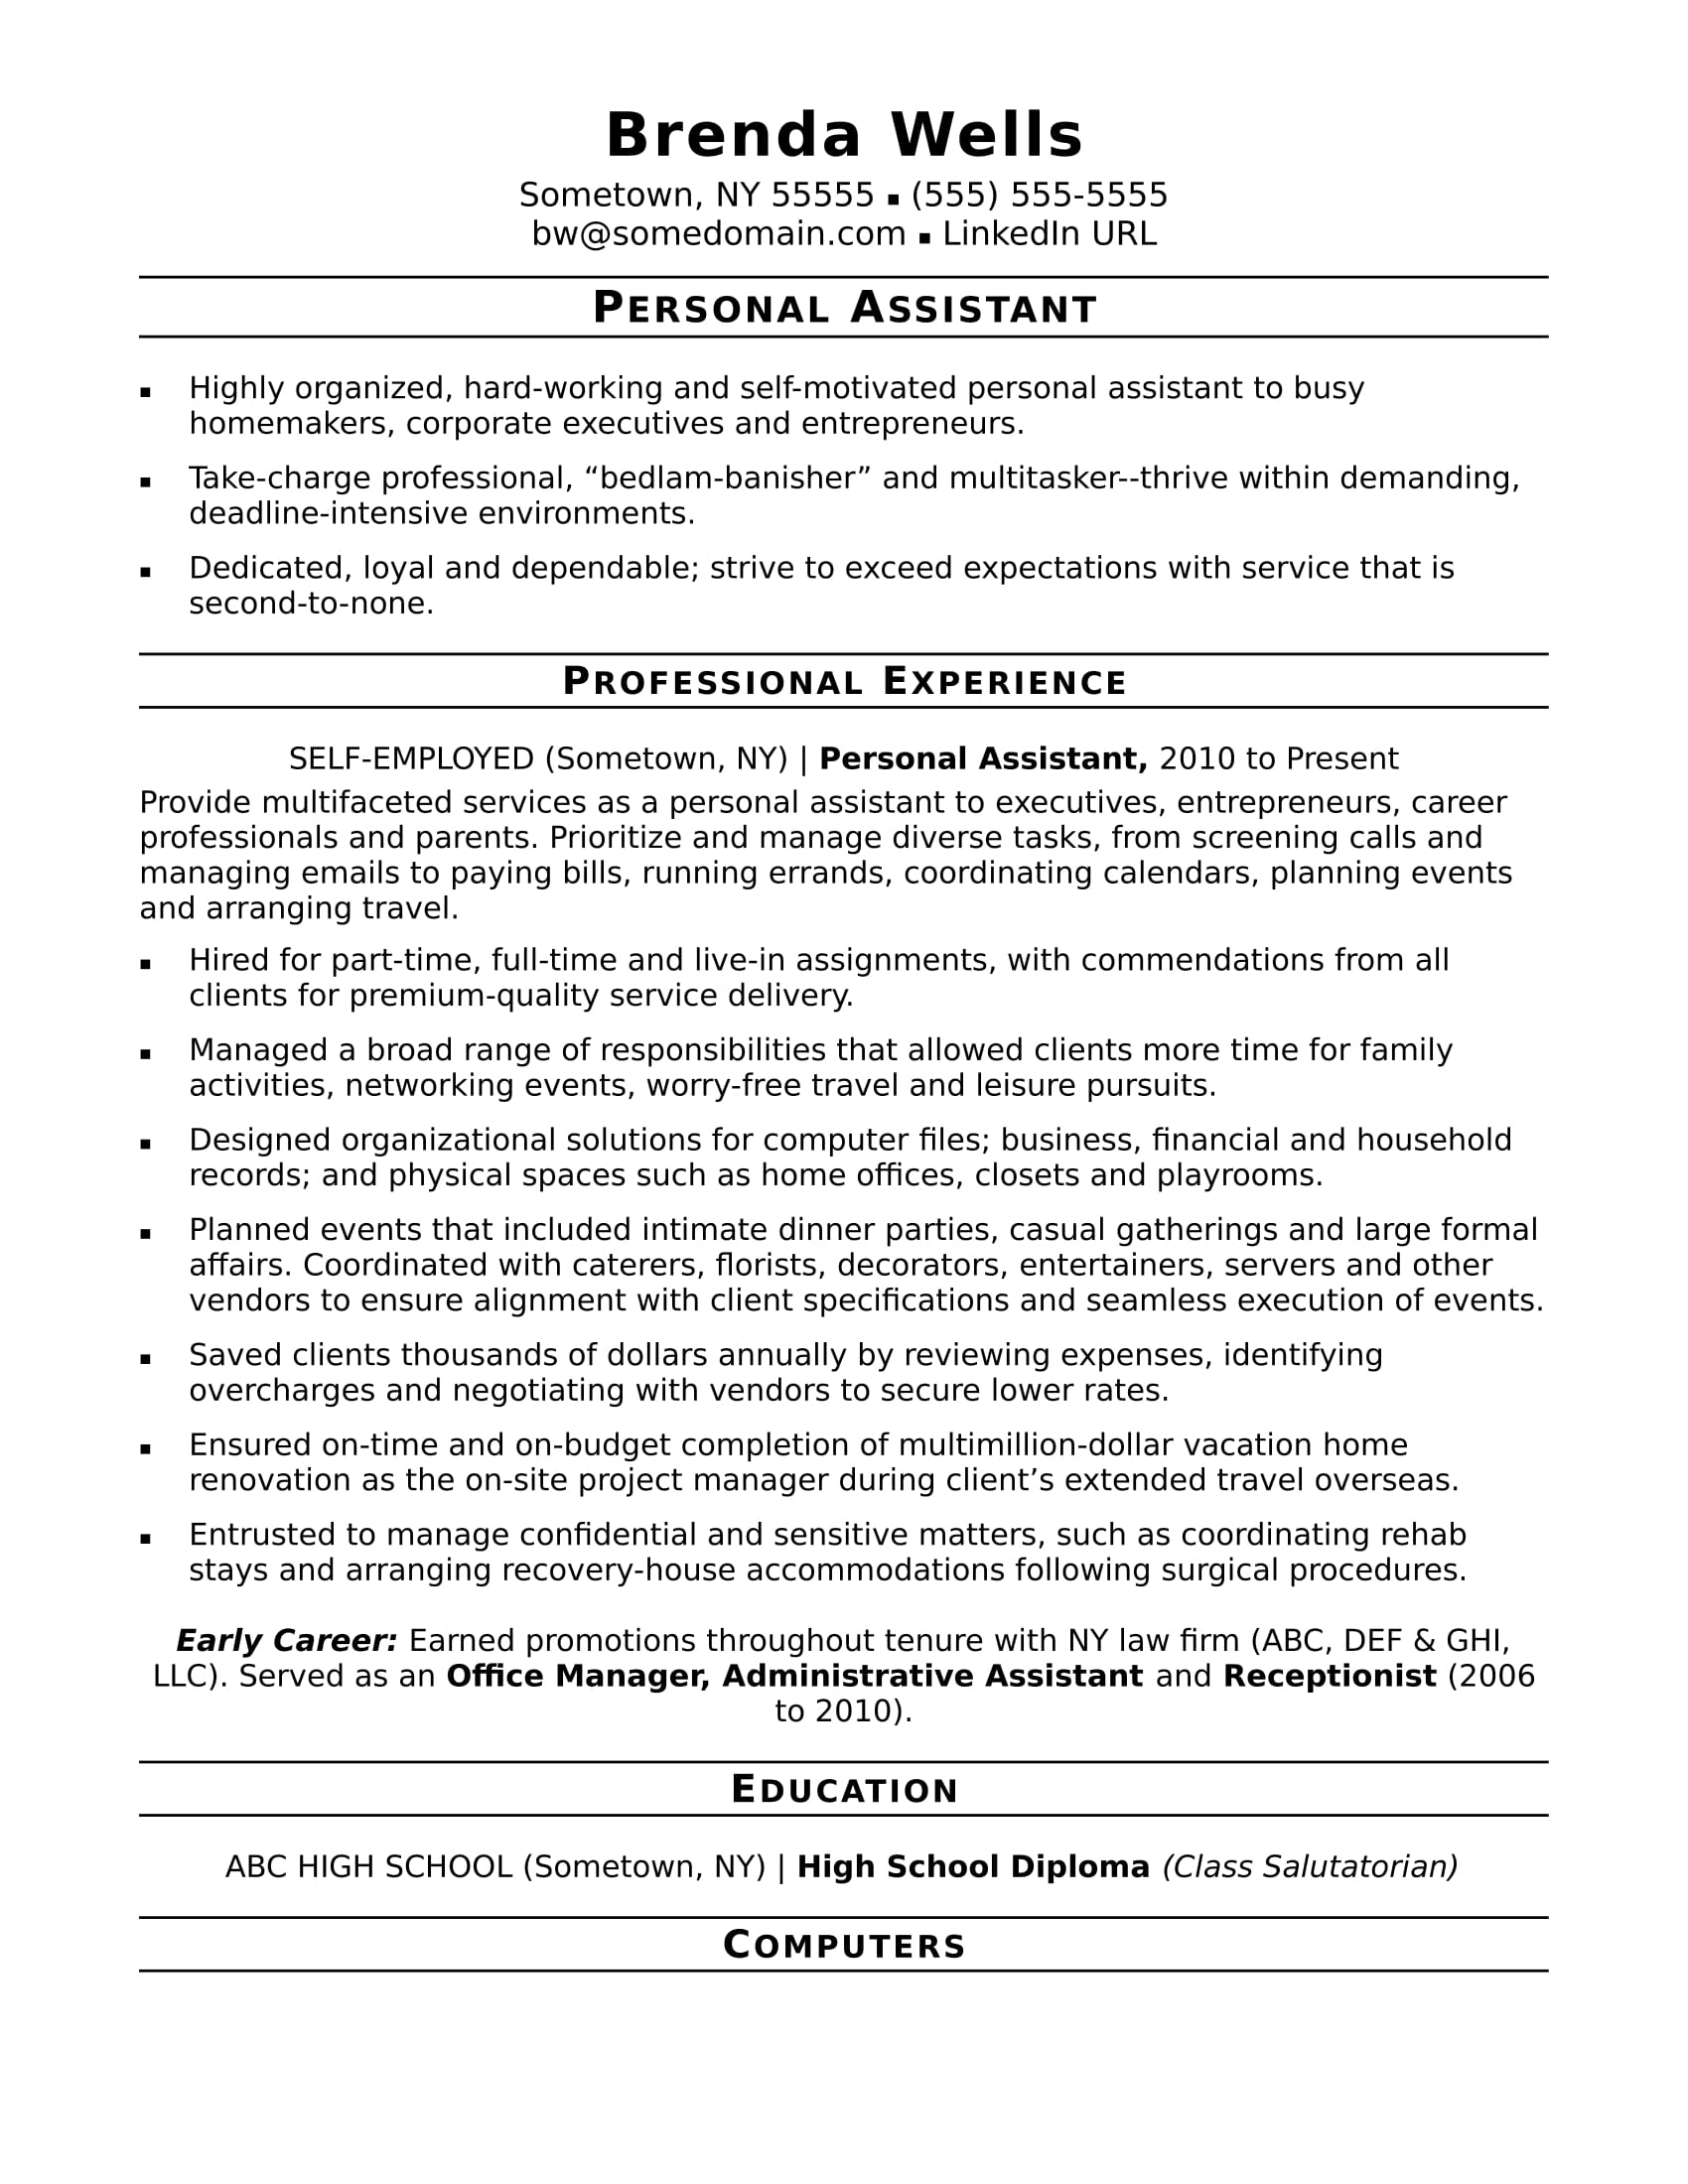 Personal Assistant Resume Personal Assistant Resume Sample Monster